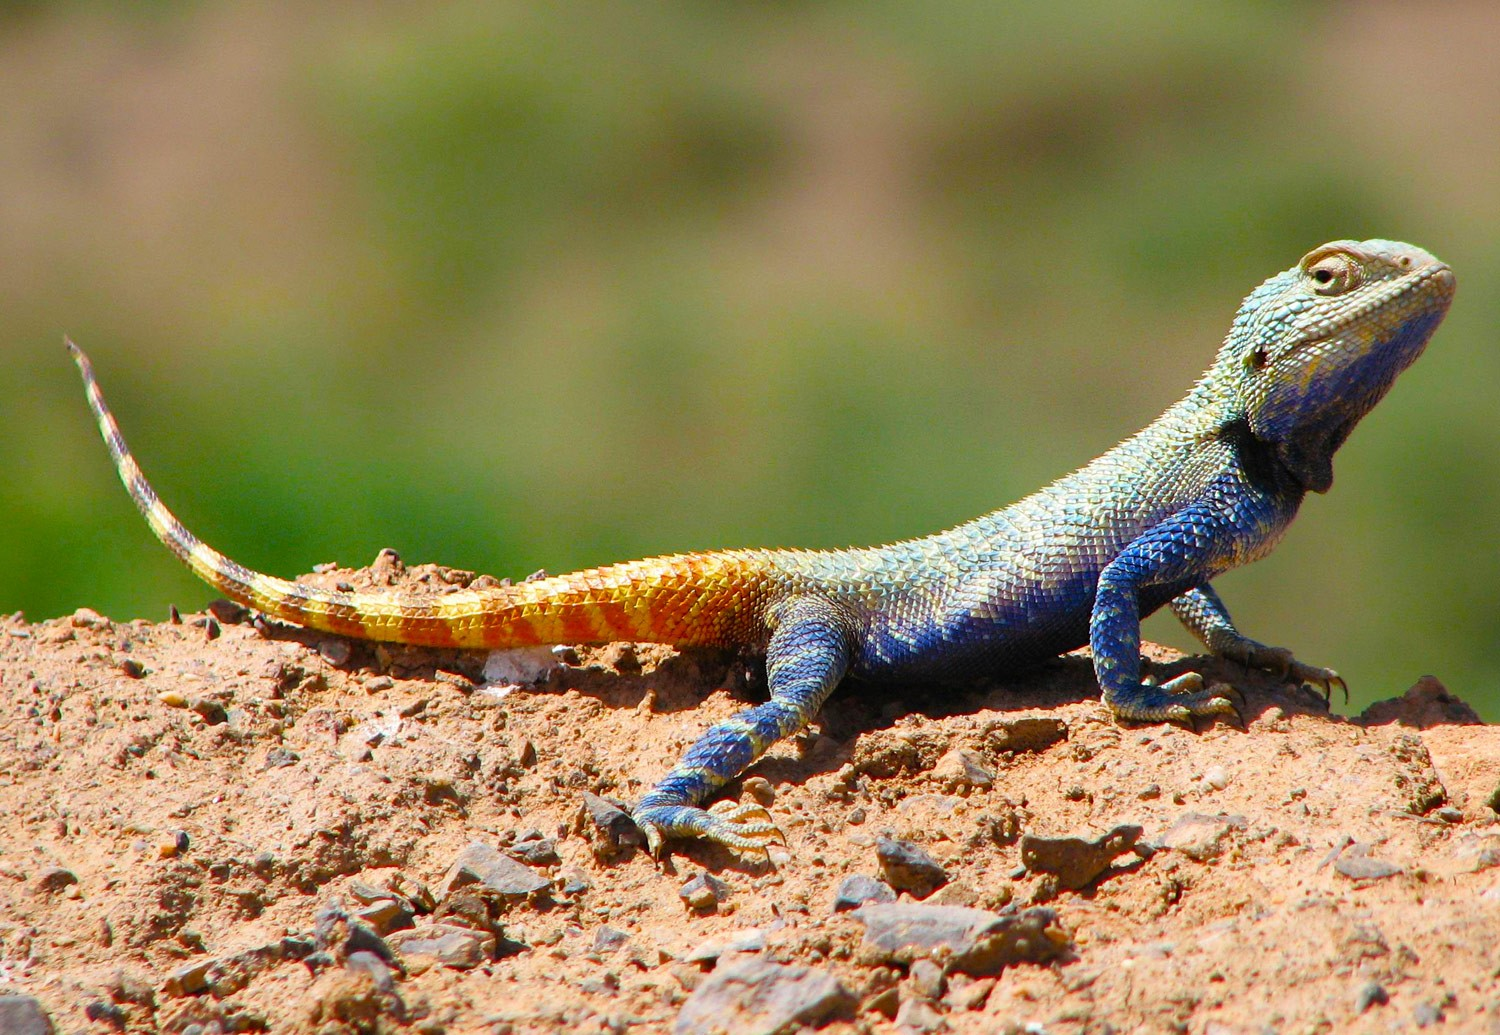 Brilliant ground agama in the Khar Turan National Park